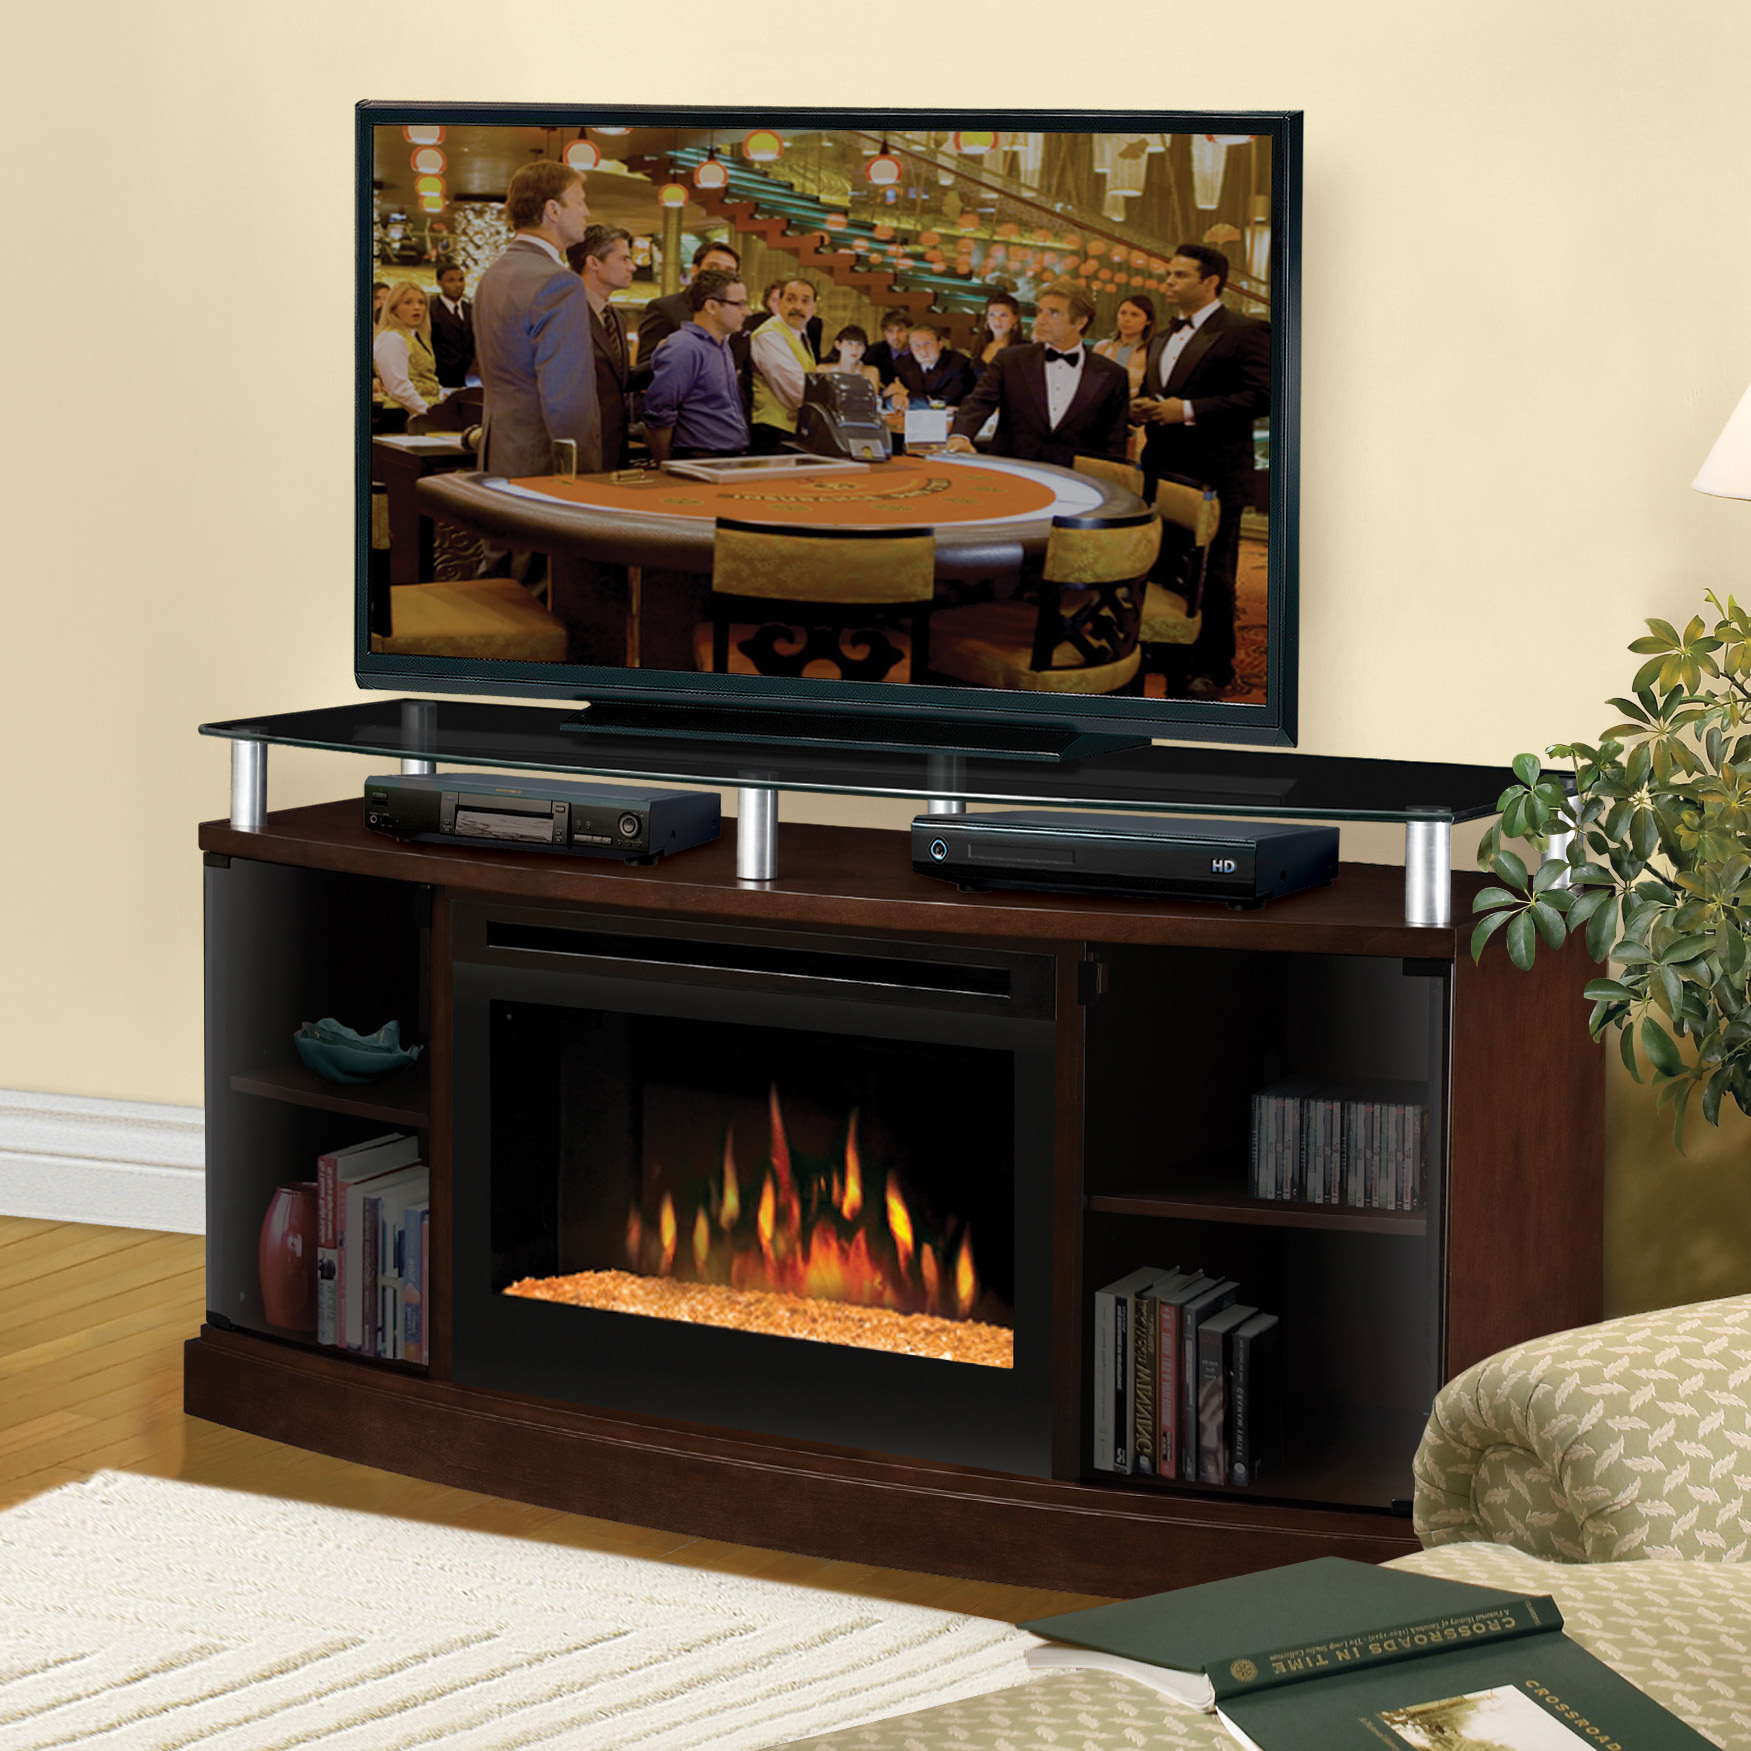 click image media product centers insert living to fireplace tv contemporary with item prairie mesquite pine stands fireplaces cabinets stand change storage